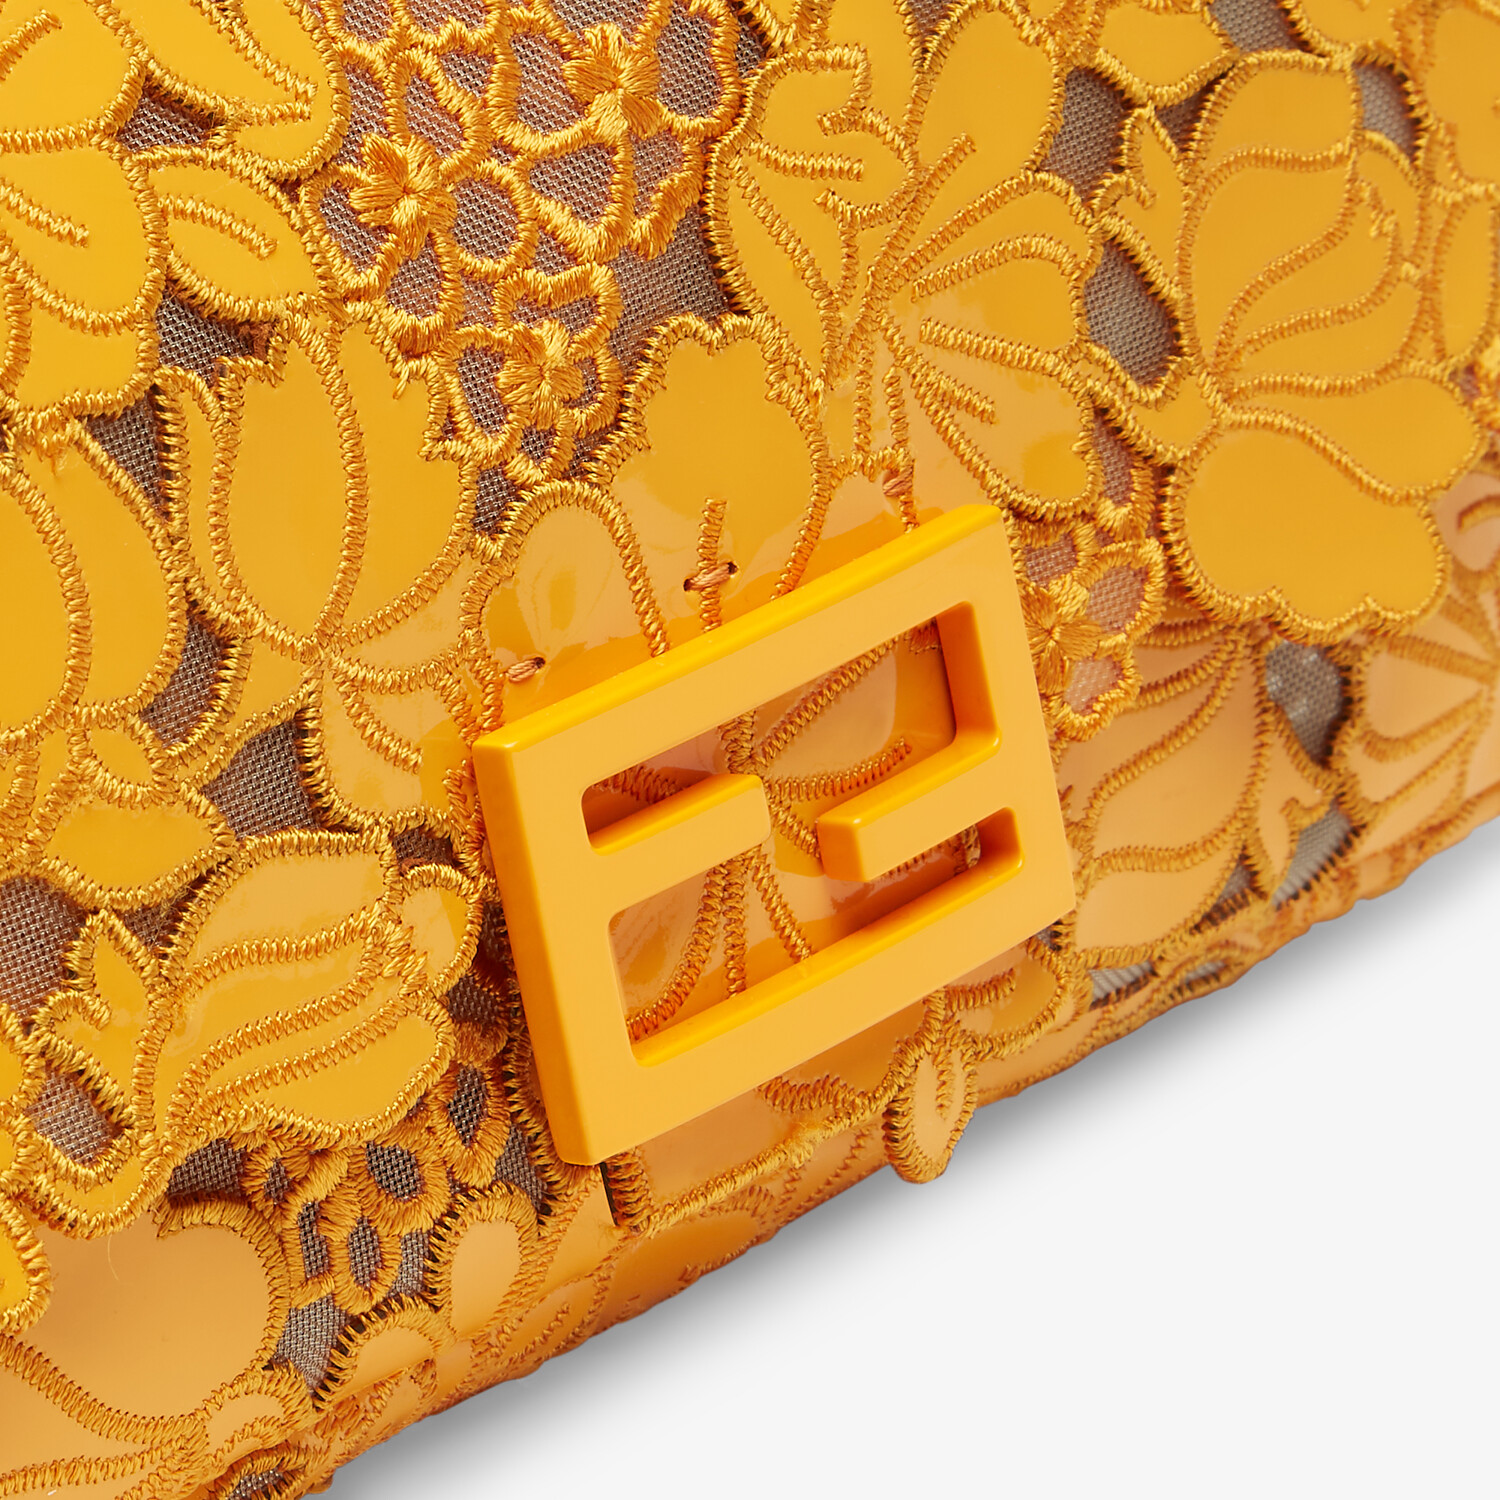 FENDI BAGUETTE - Embroidered orange patent leather bag - view 6 detail